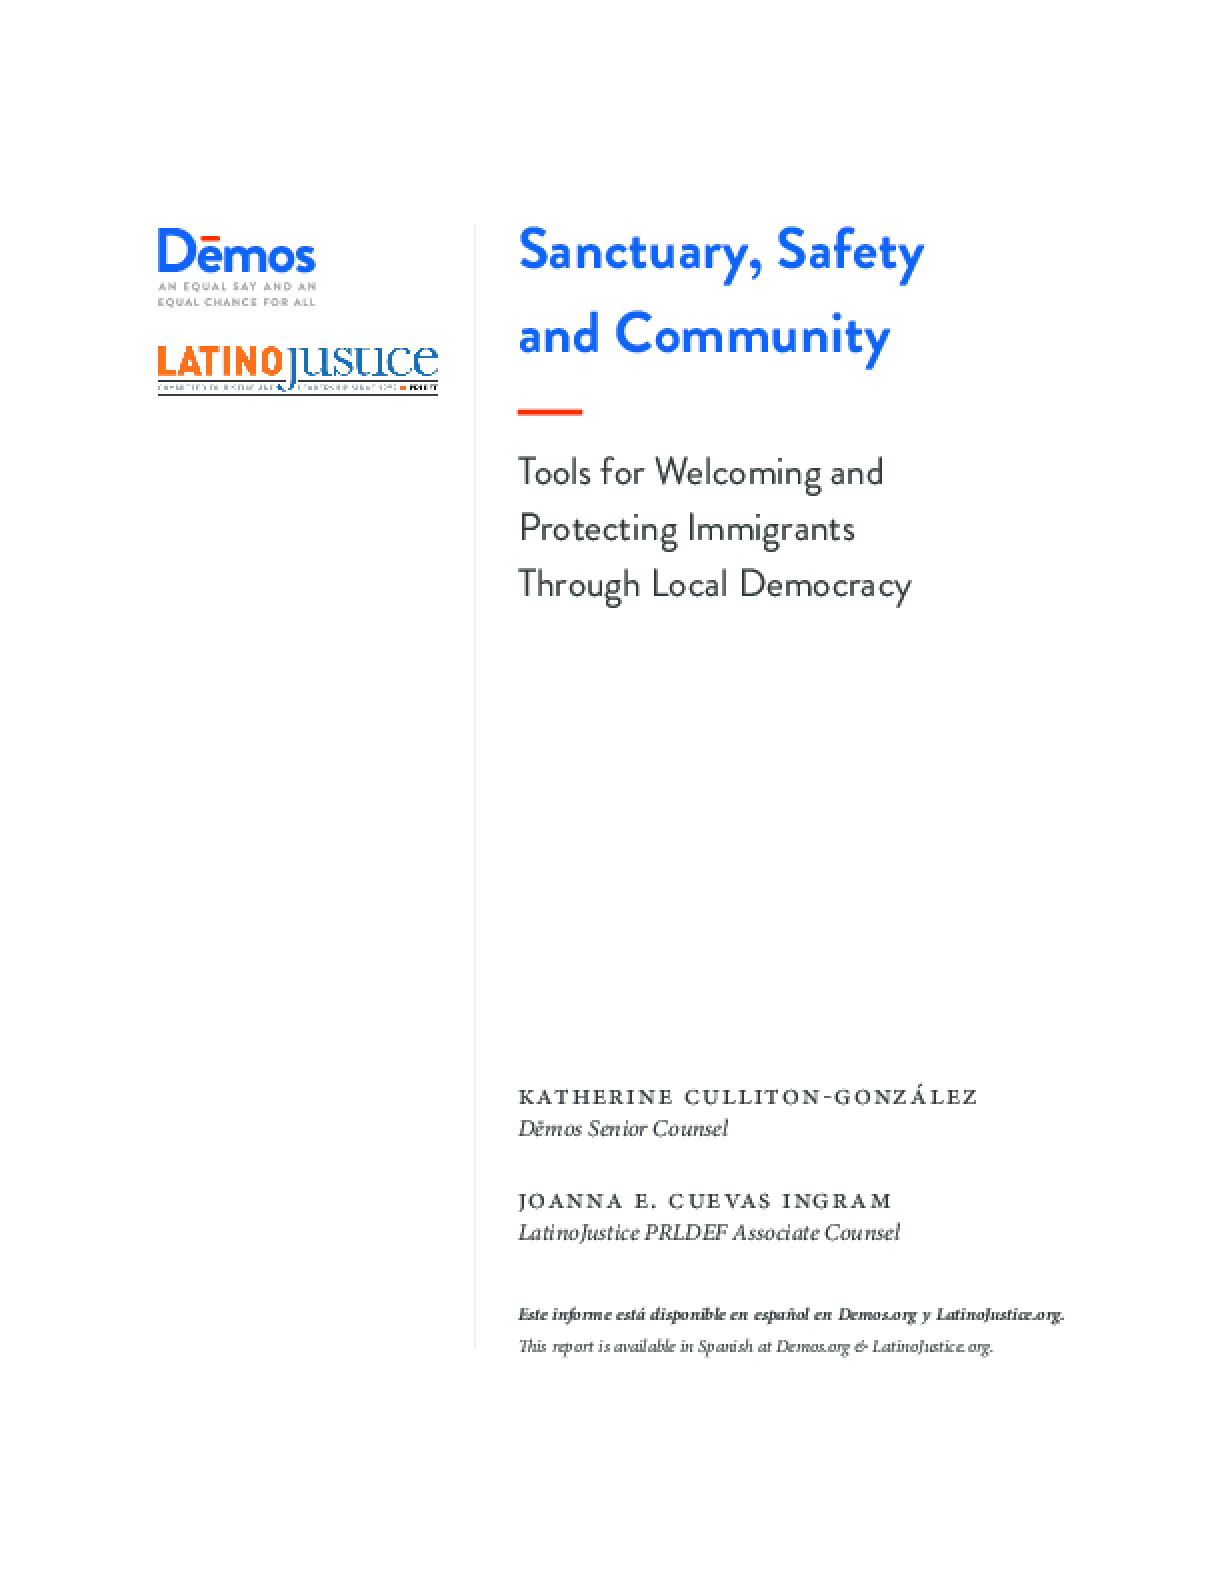 Sanctuary, Safety and Community: Tools For Welcoming and Protecting Immigrants Through Local Democracy